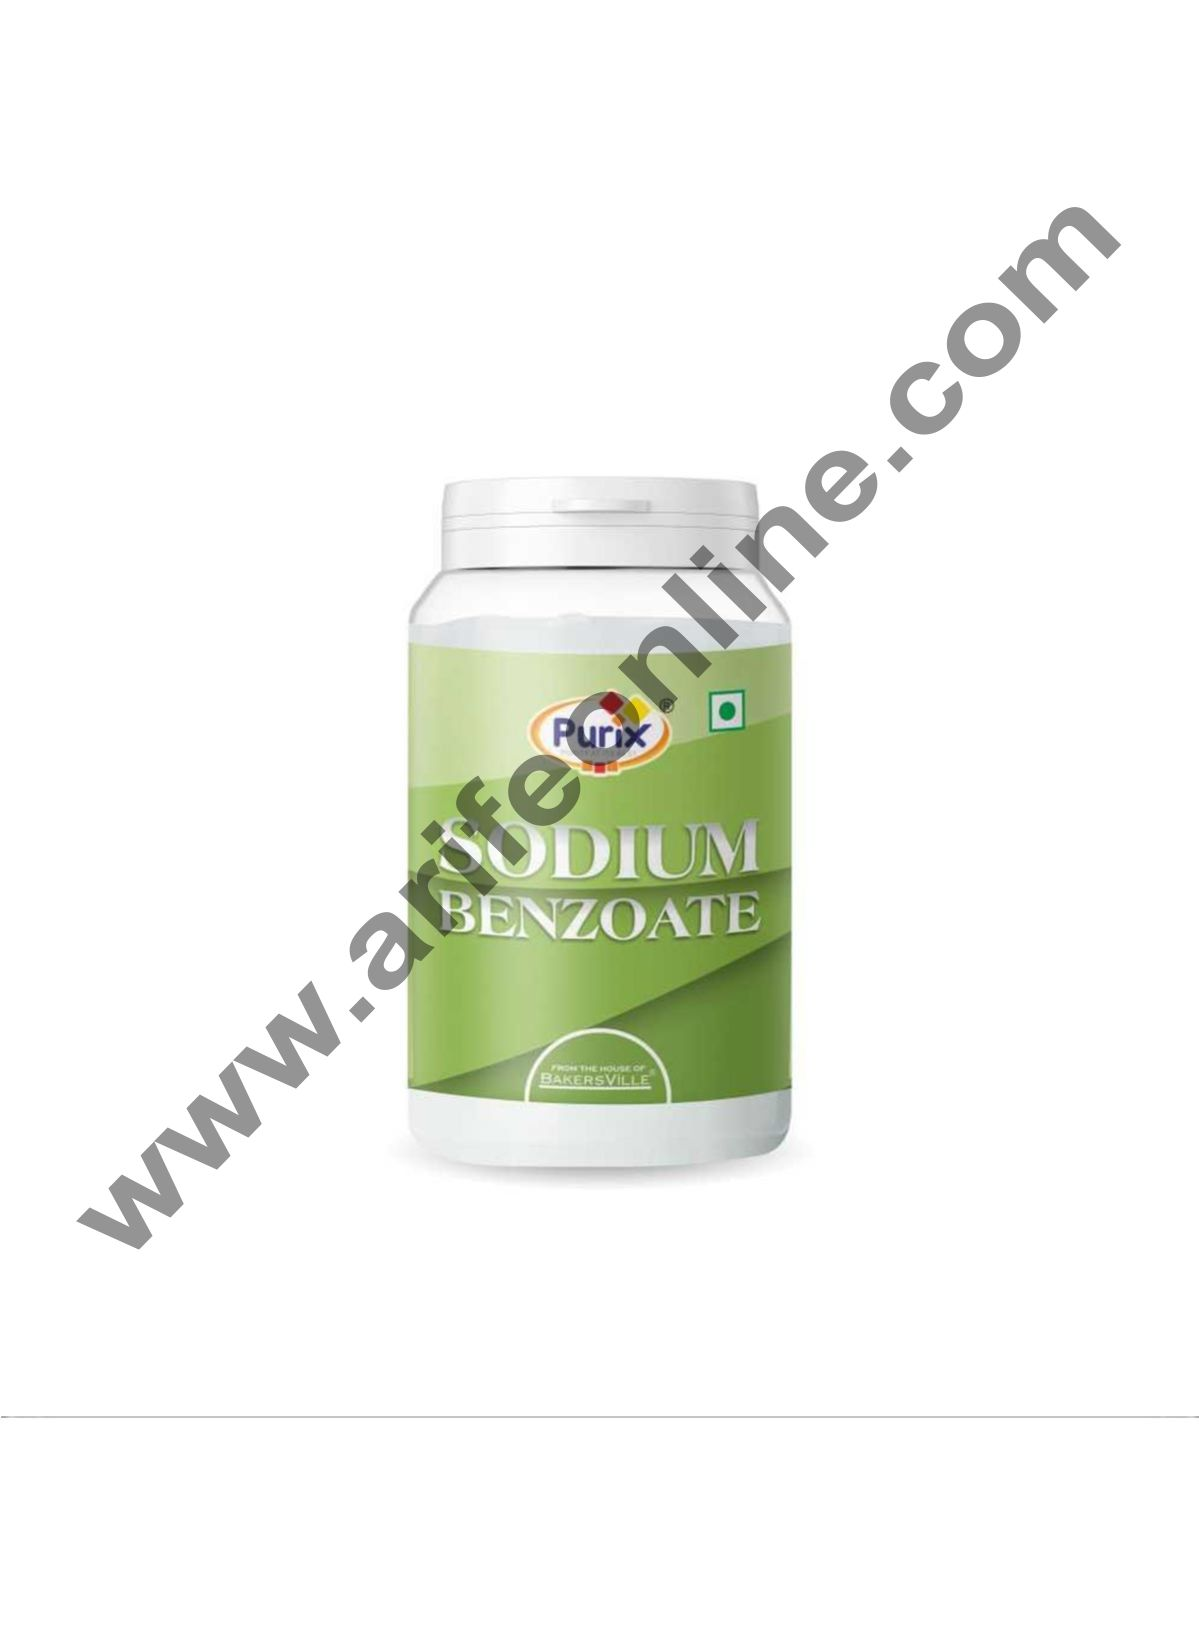 Purix ™ Sodium Benzoate ,75gm